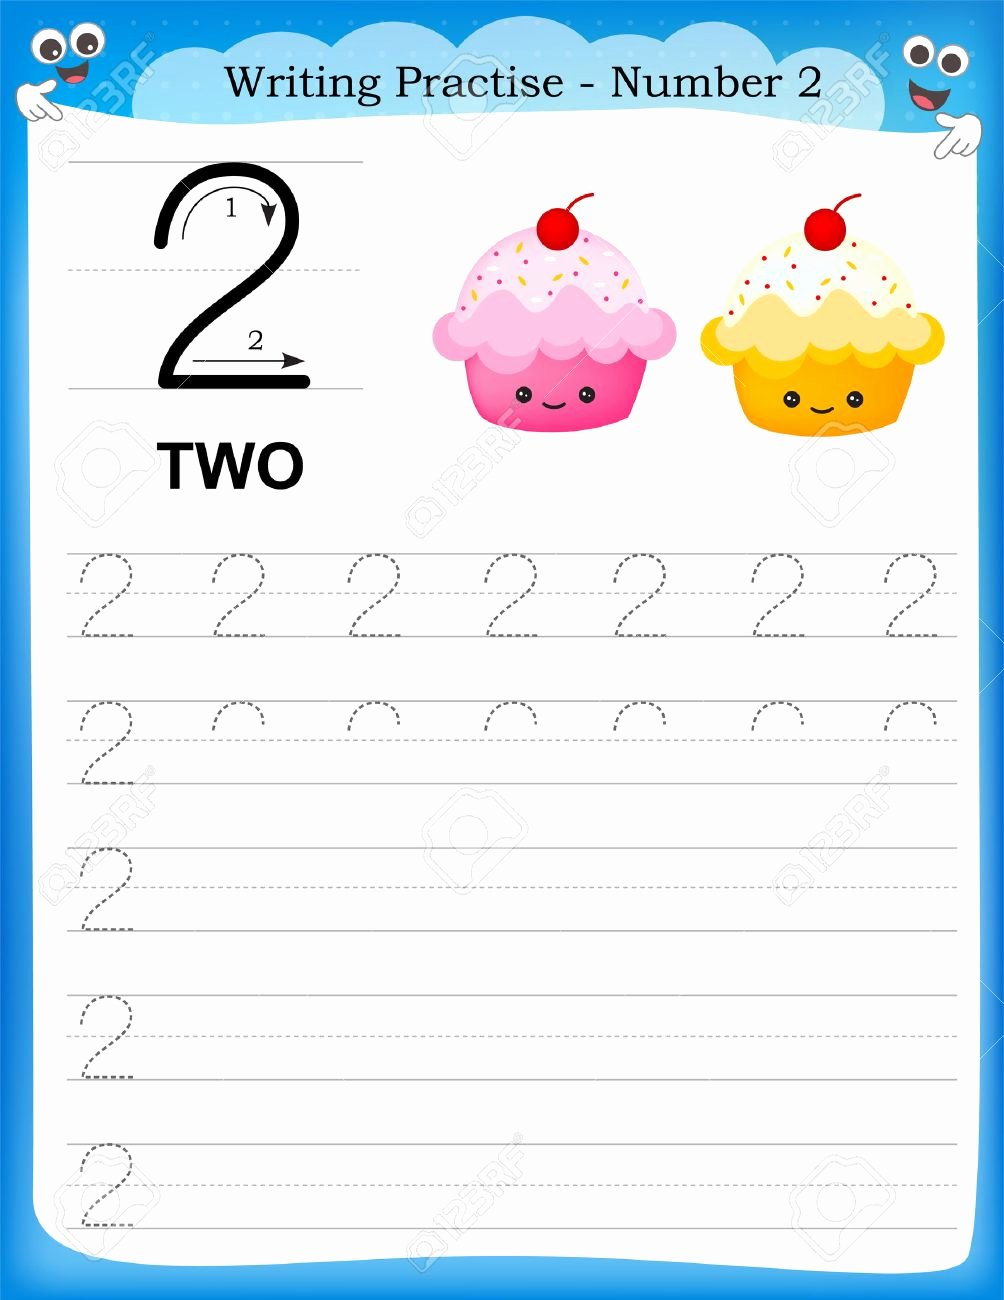 Number Two Worksheets for Preschoolers Best Of Writing Practice Number Two Printable Worksheet for Preschool